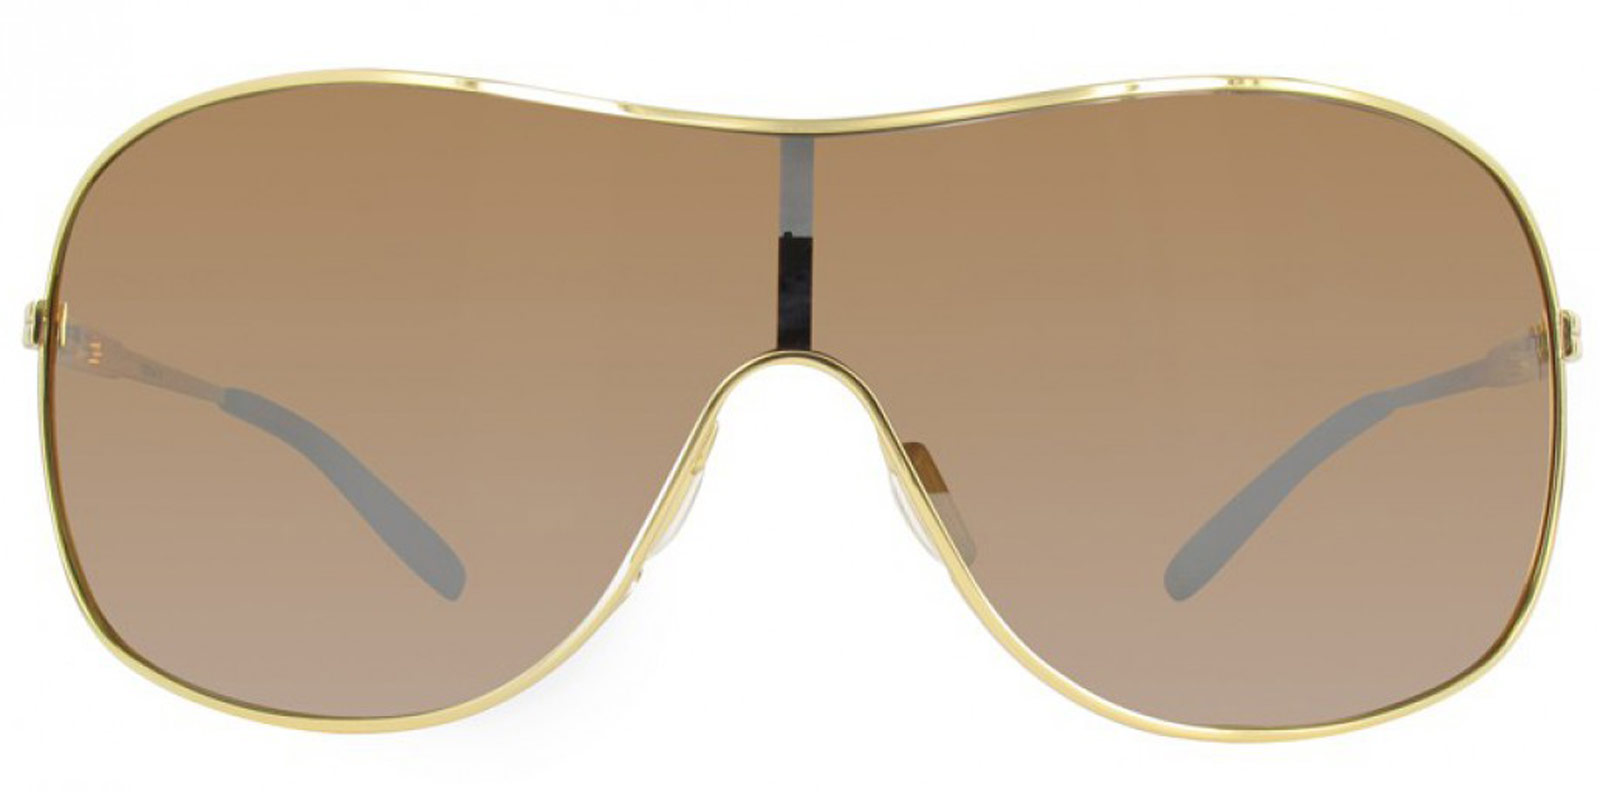 Oakley OO4078-01 Collected Women's Gold-Tone Frame